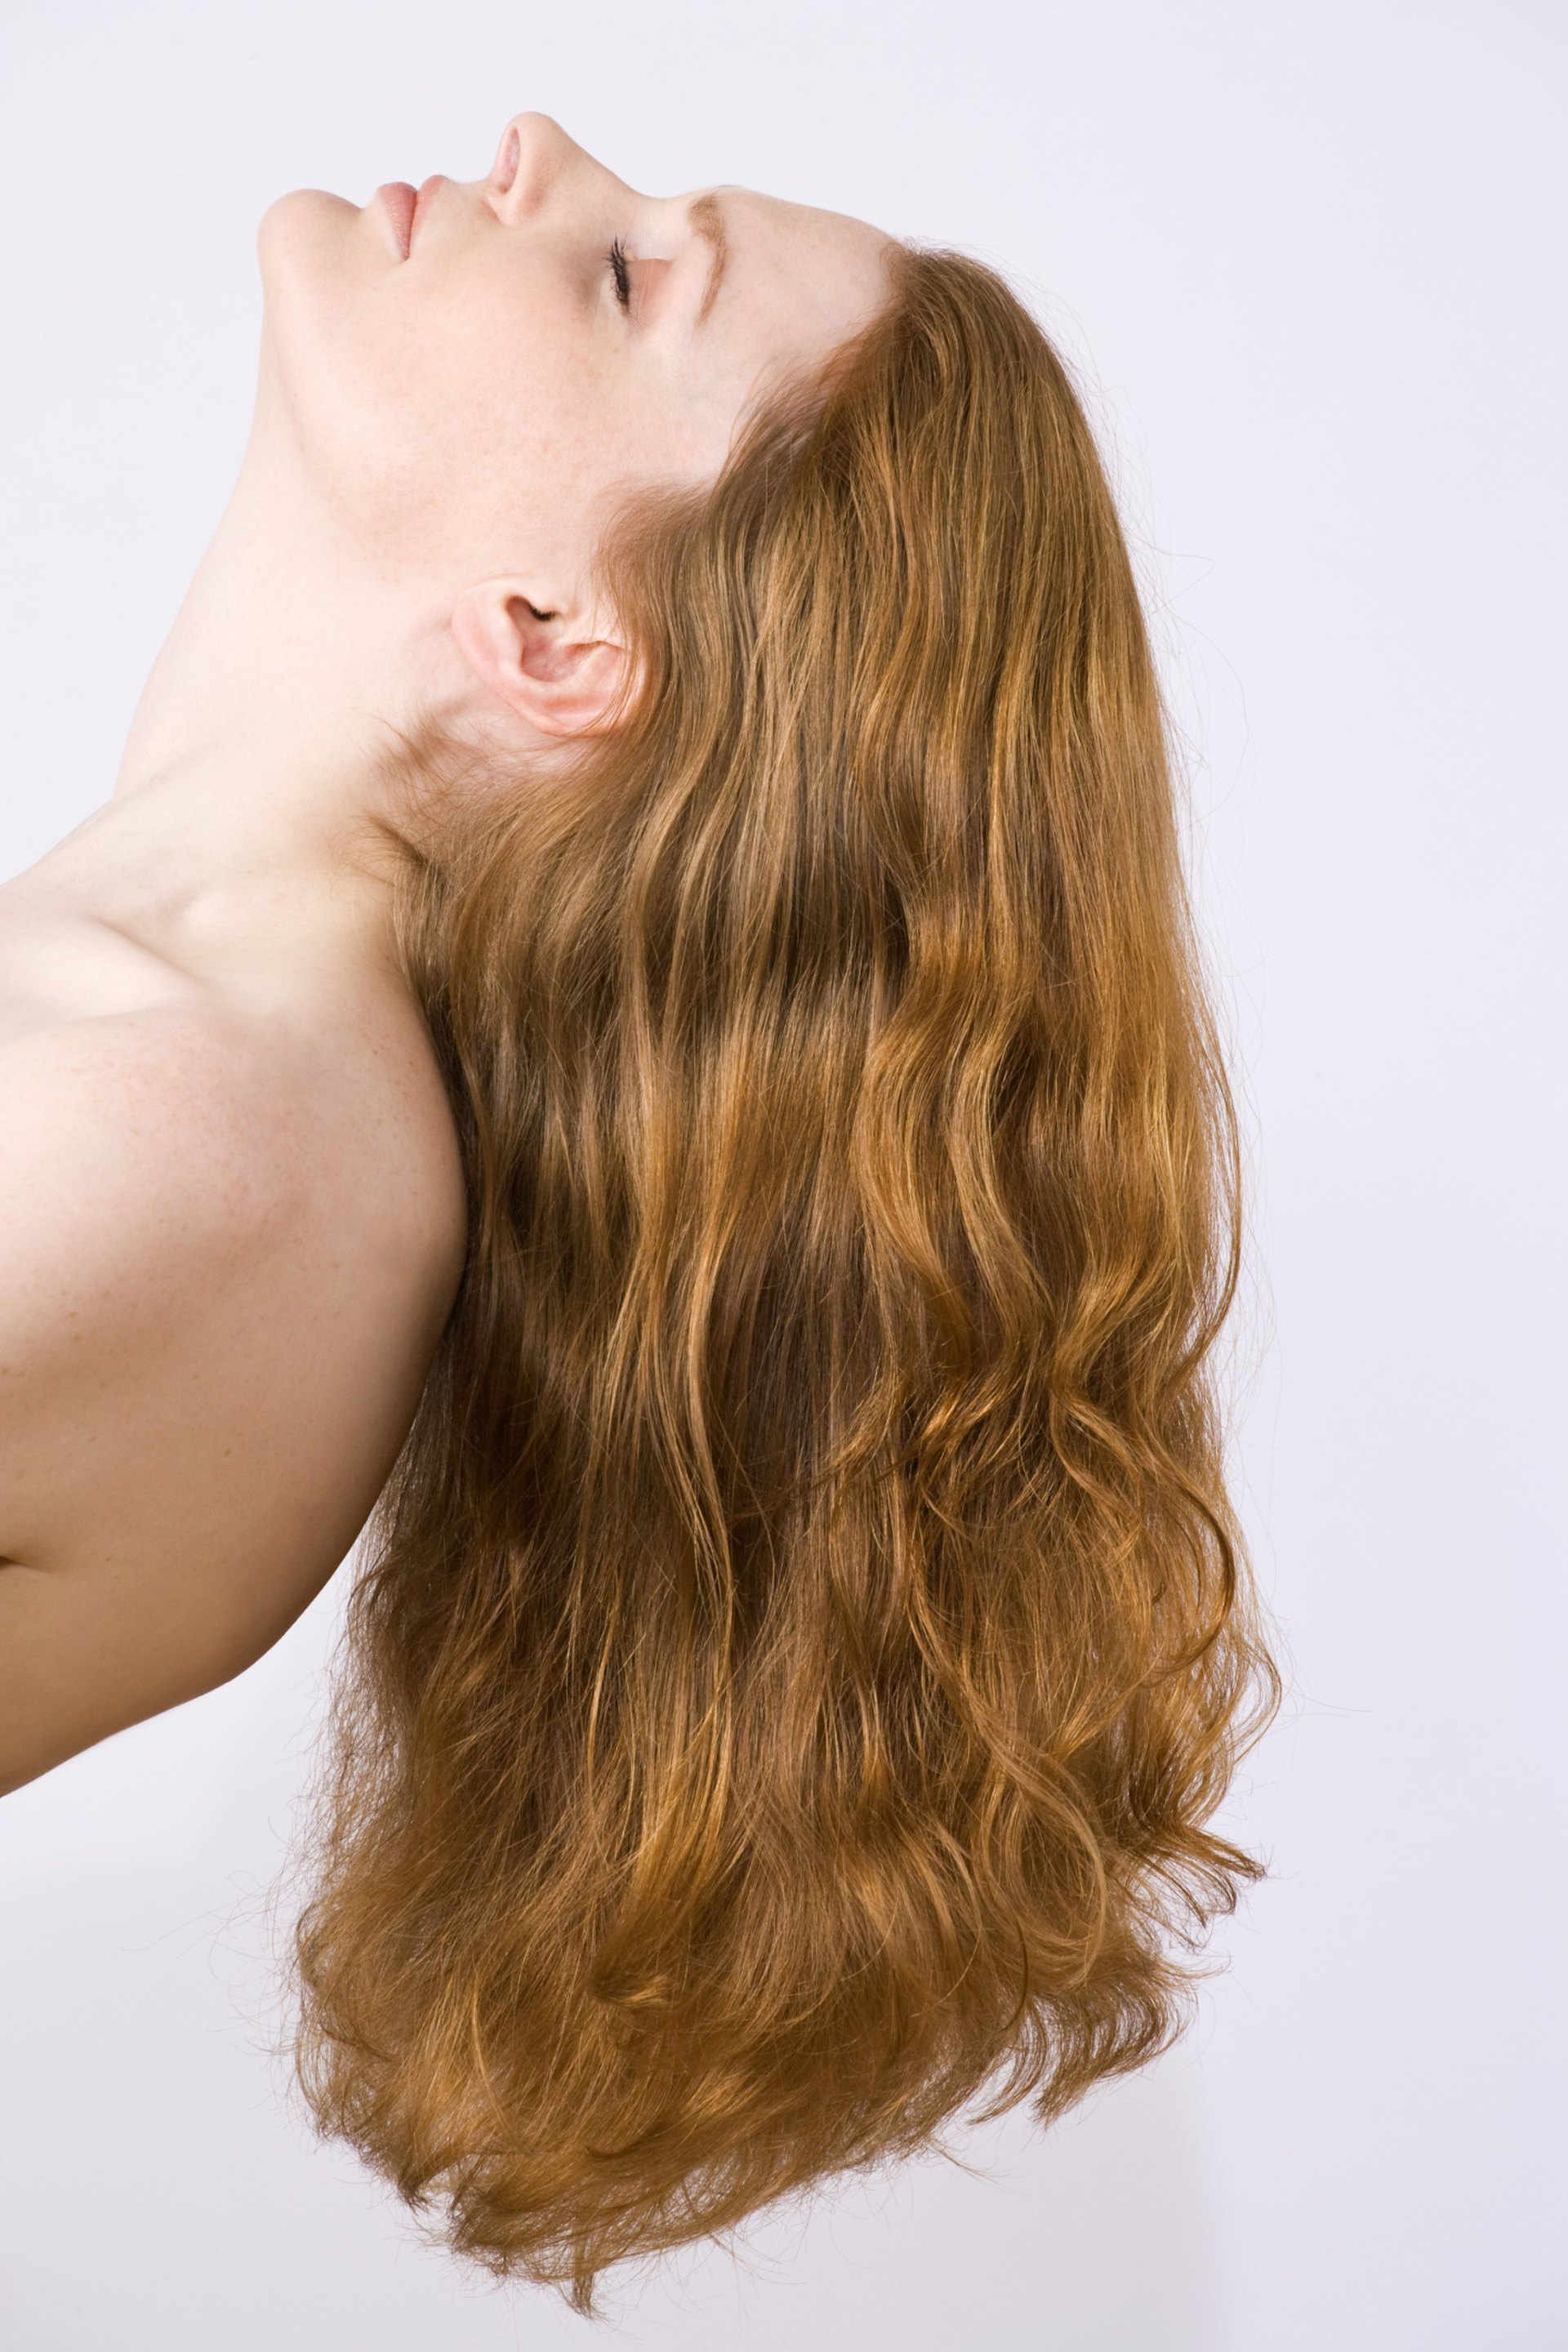 Signs Symptoms Of Hairdye Allergy Livestrong